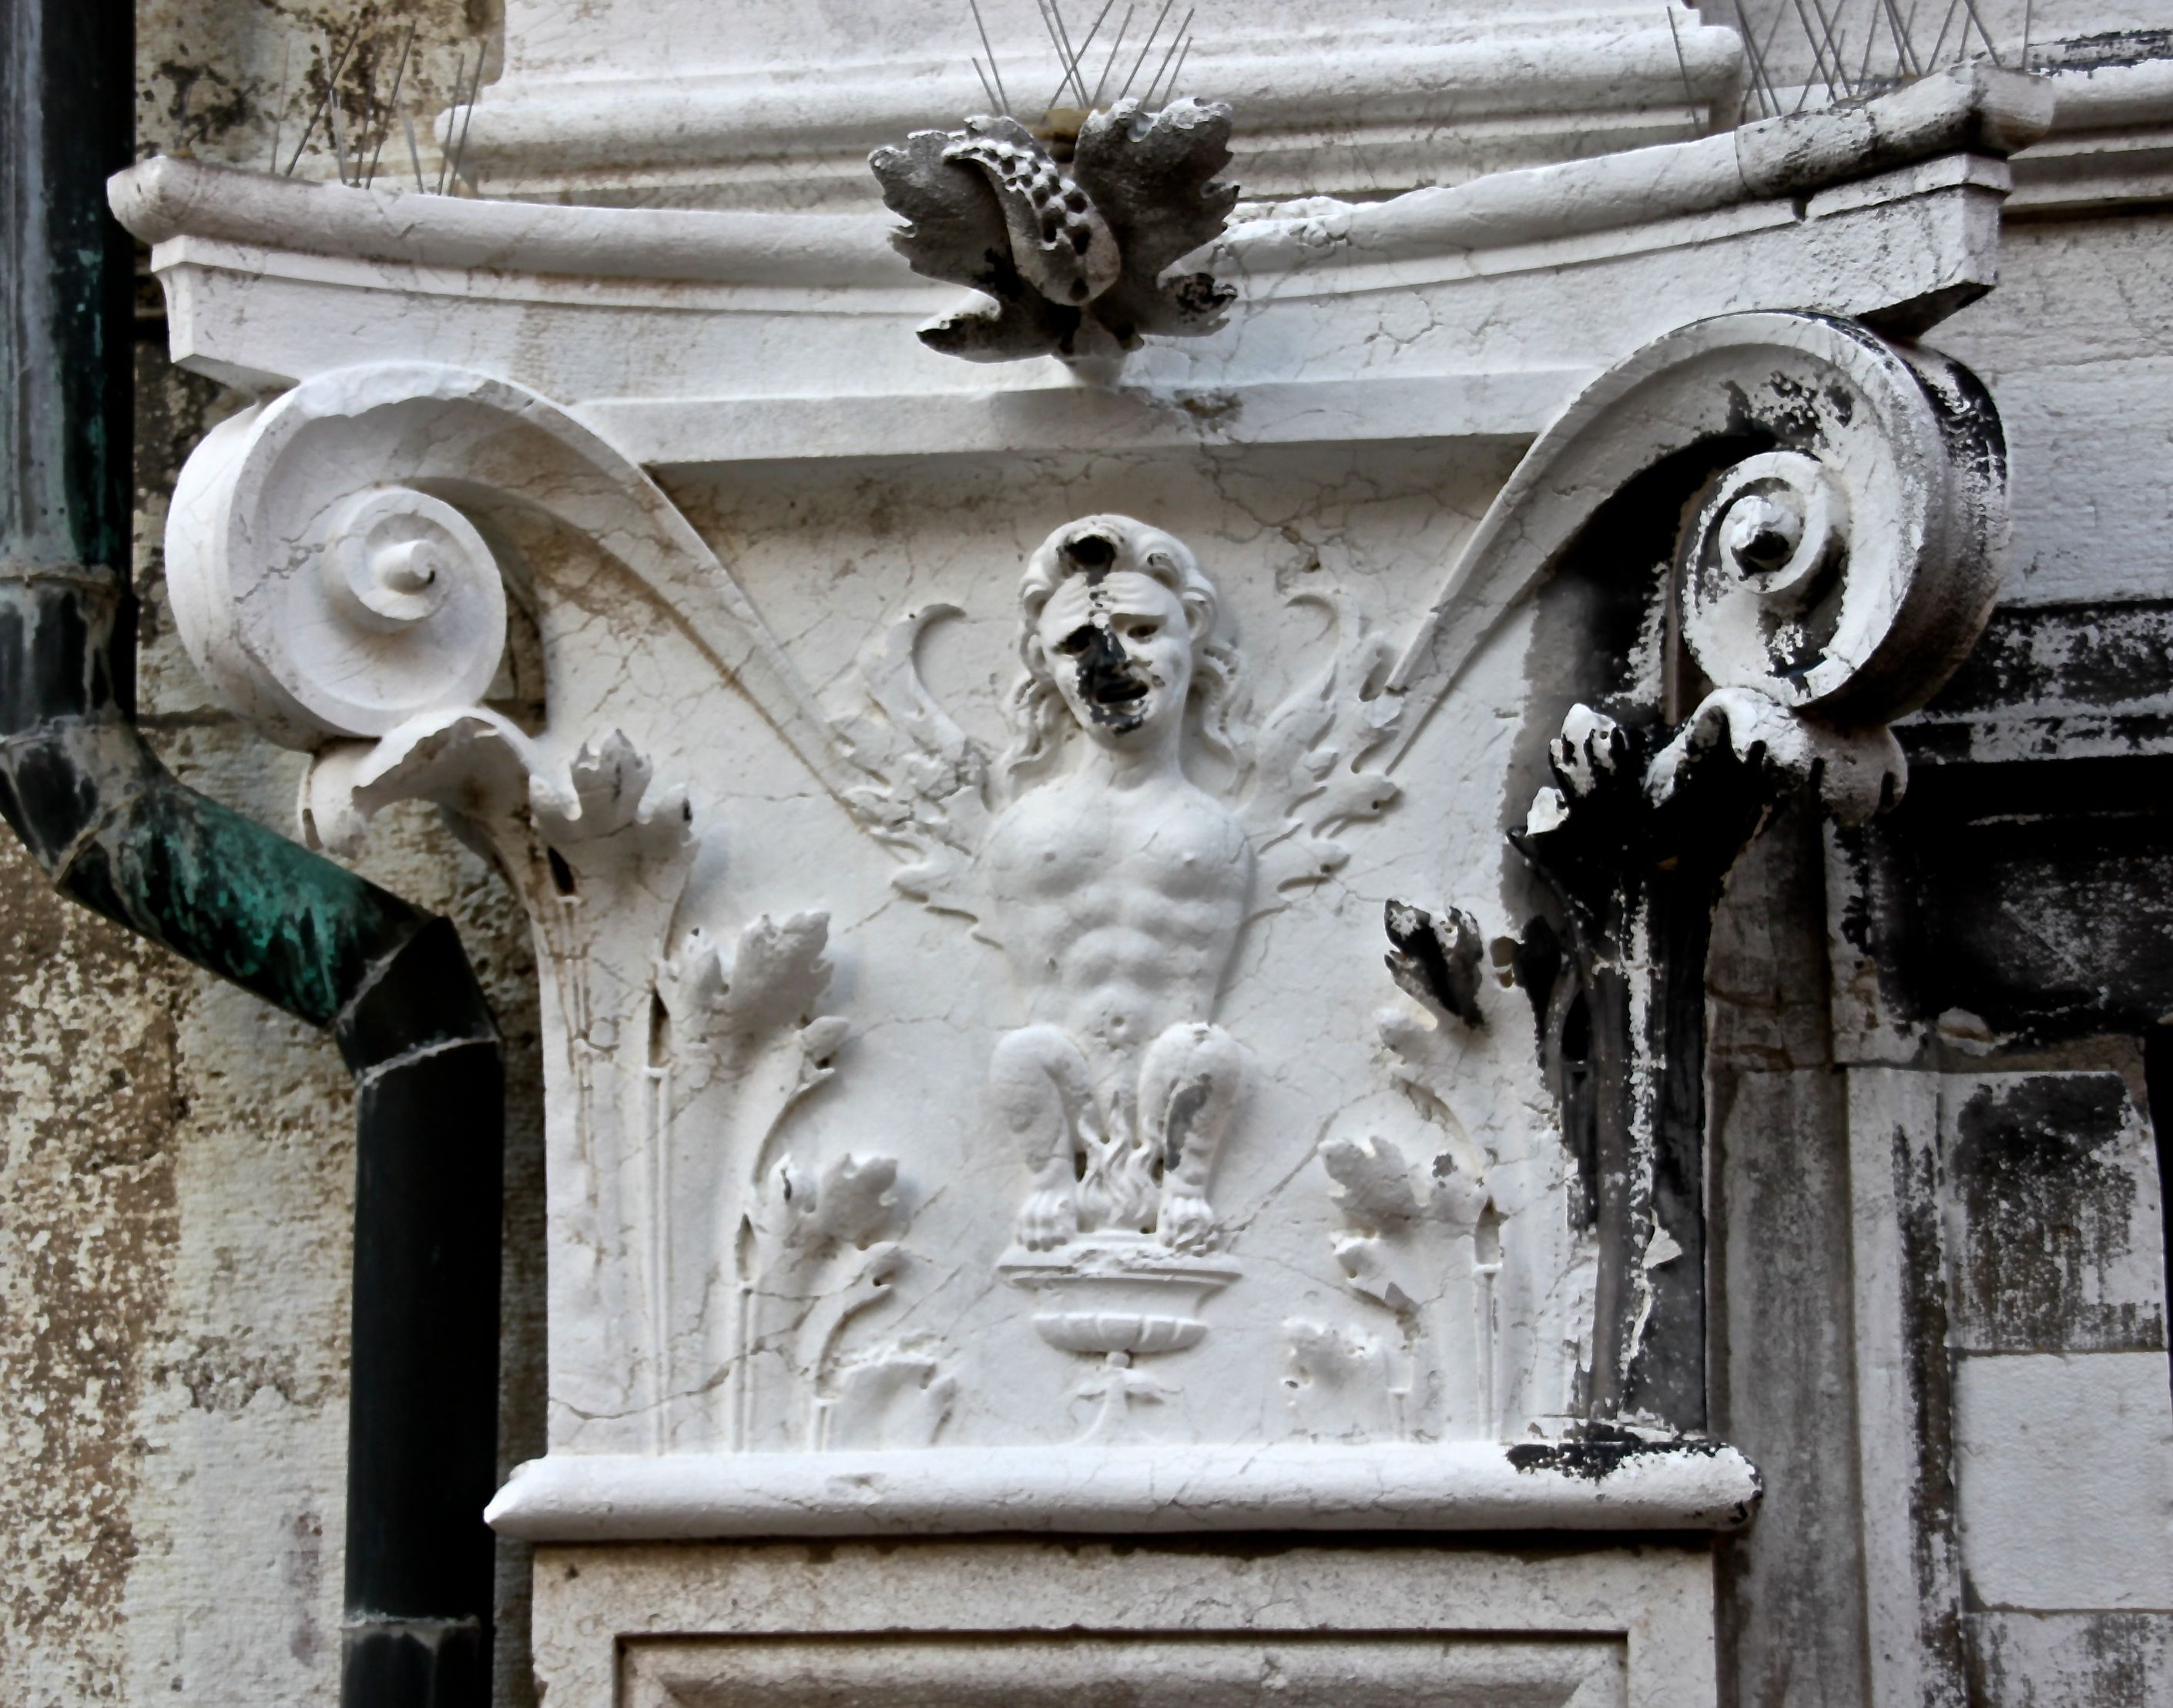 I'll set my fanny on fire! More intimate carving on the Old Prison at the Rialto in Venice